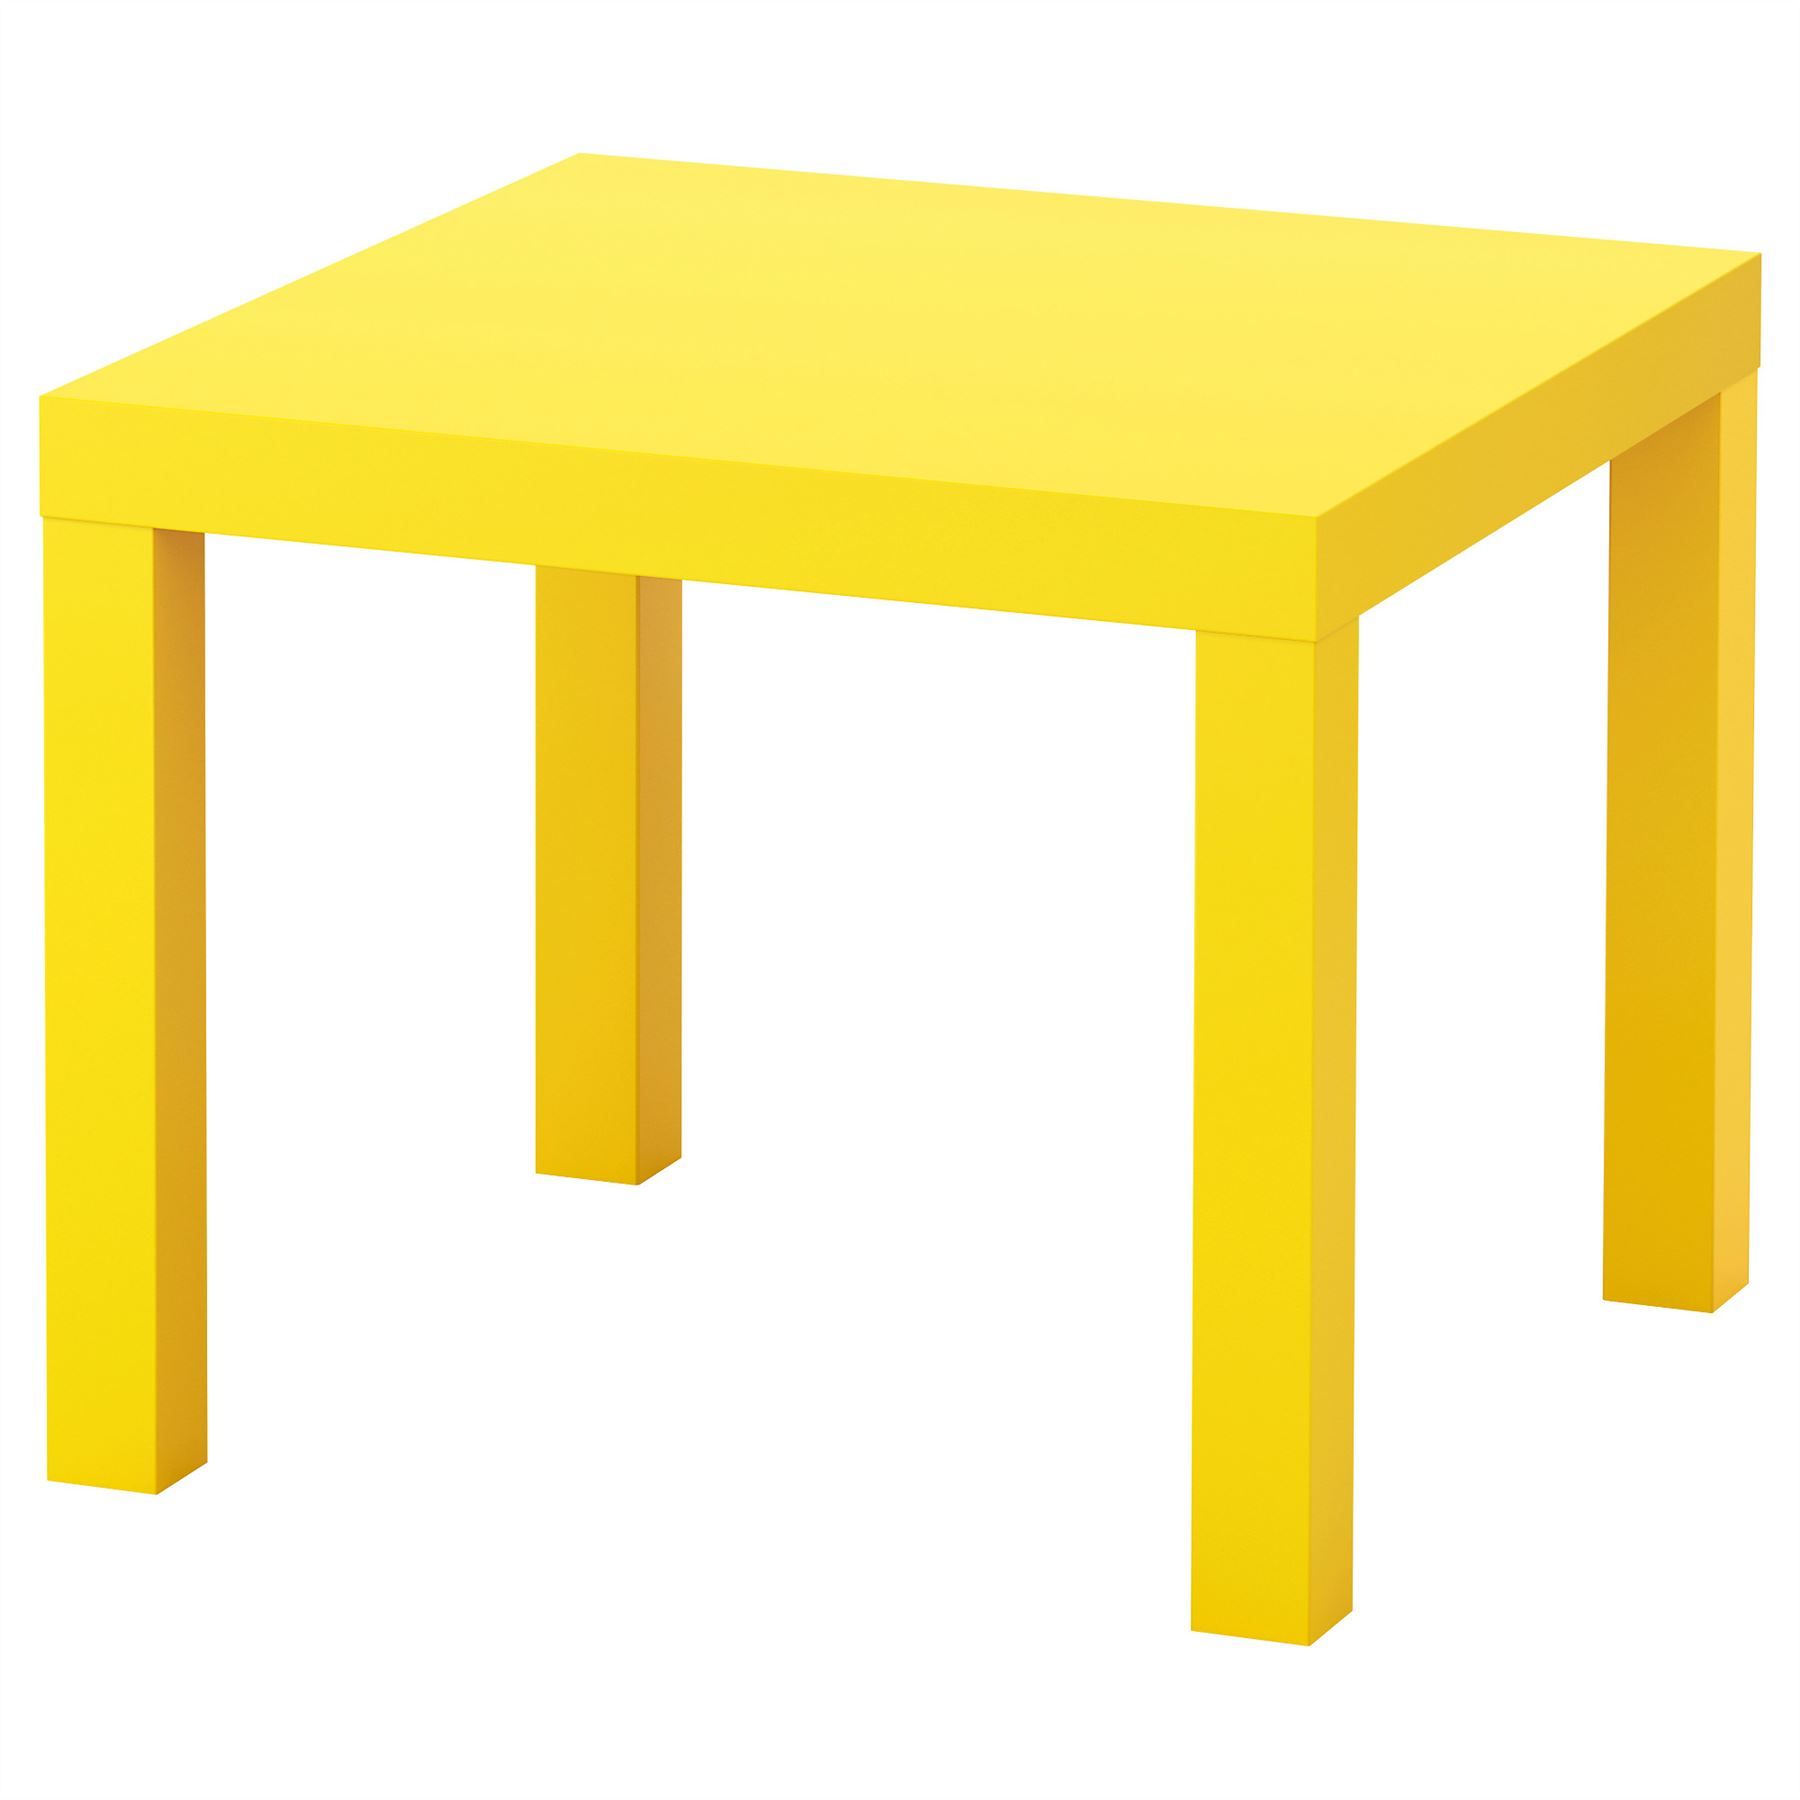 ikea lack coffee table instructions